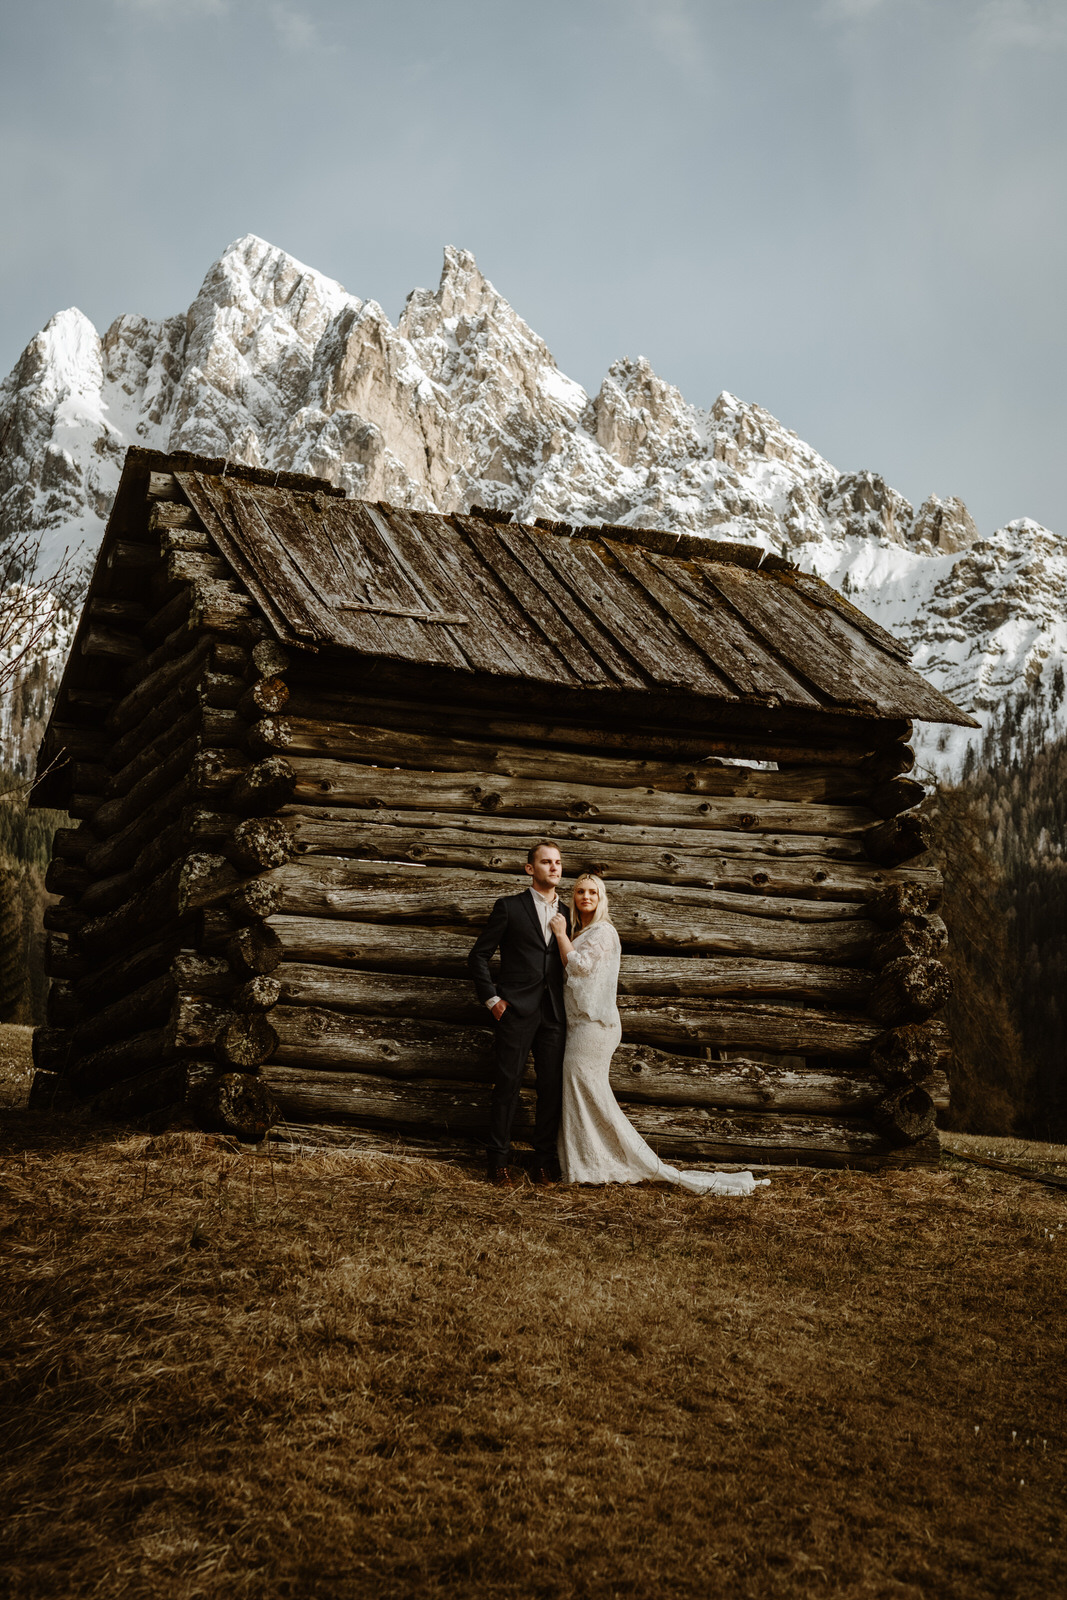 A wedding couple is standing in front of a mountain hut.